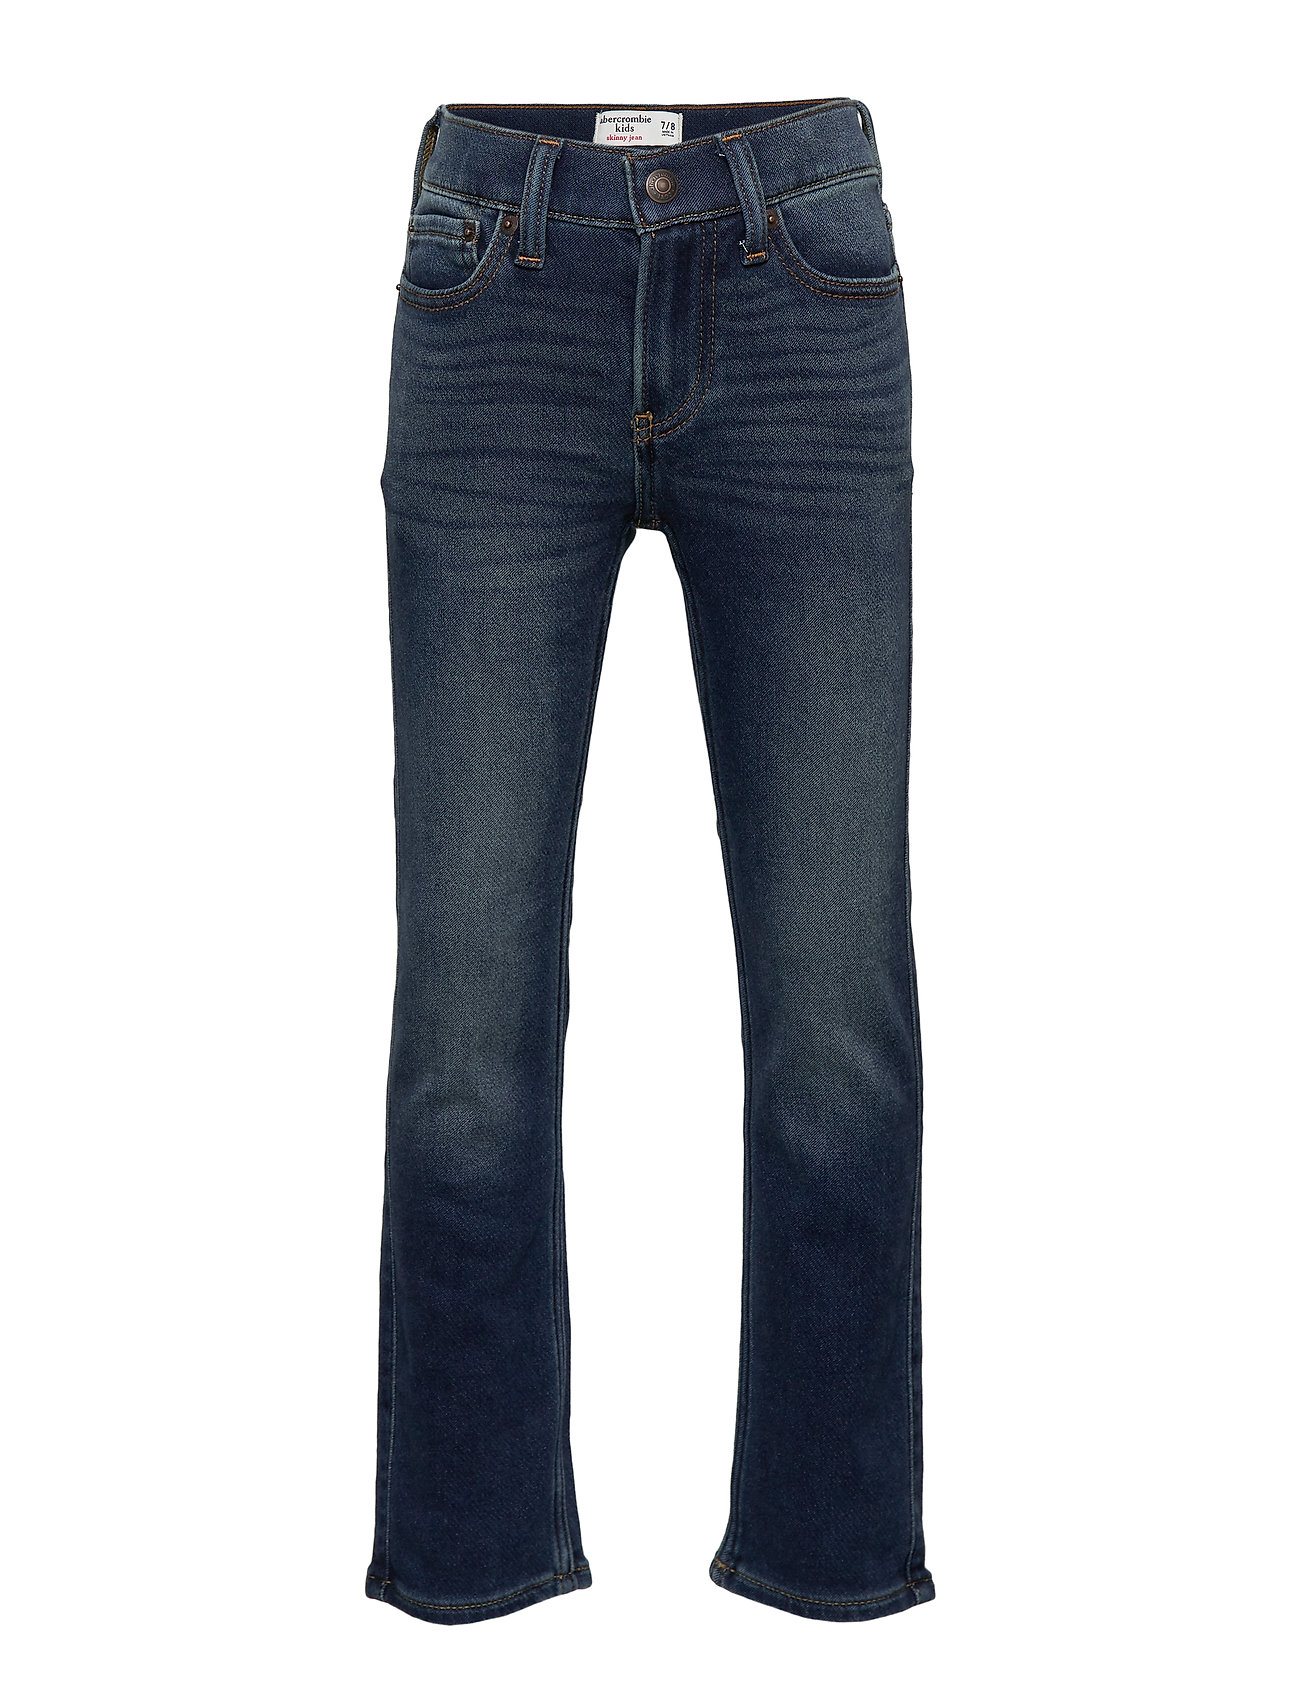 Image of Skinny Sweatpant Stretch Jeans Blå Abercrombie & Fitch (3220495129)